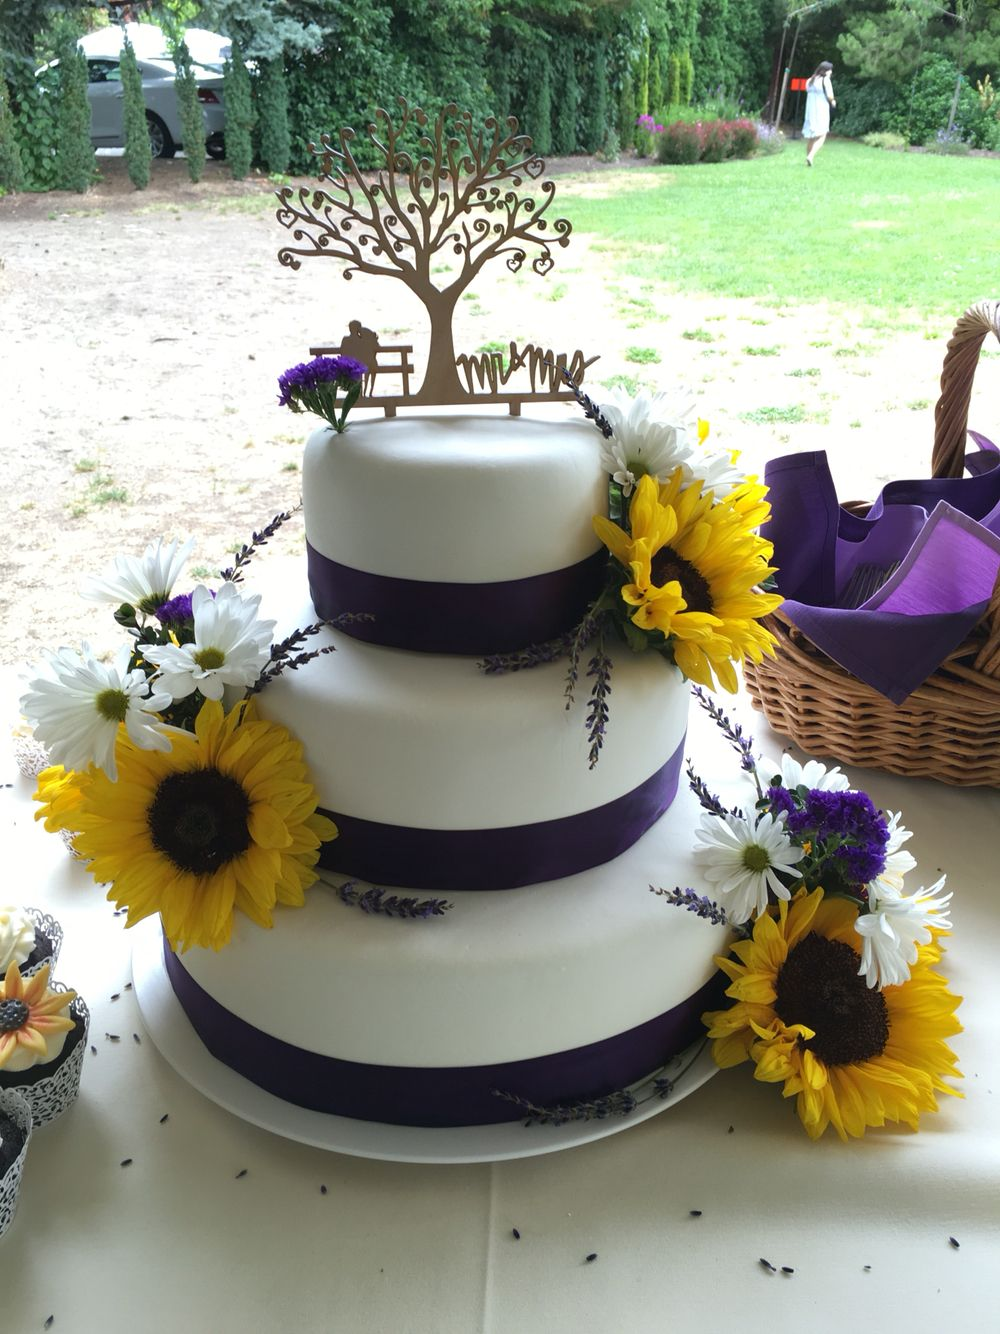 Sunflower wedding cake, lavender and honey middle tier